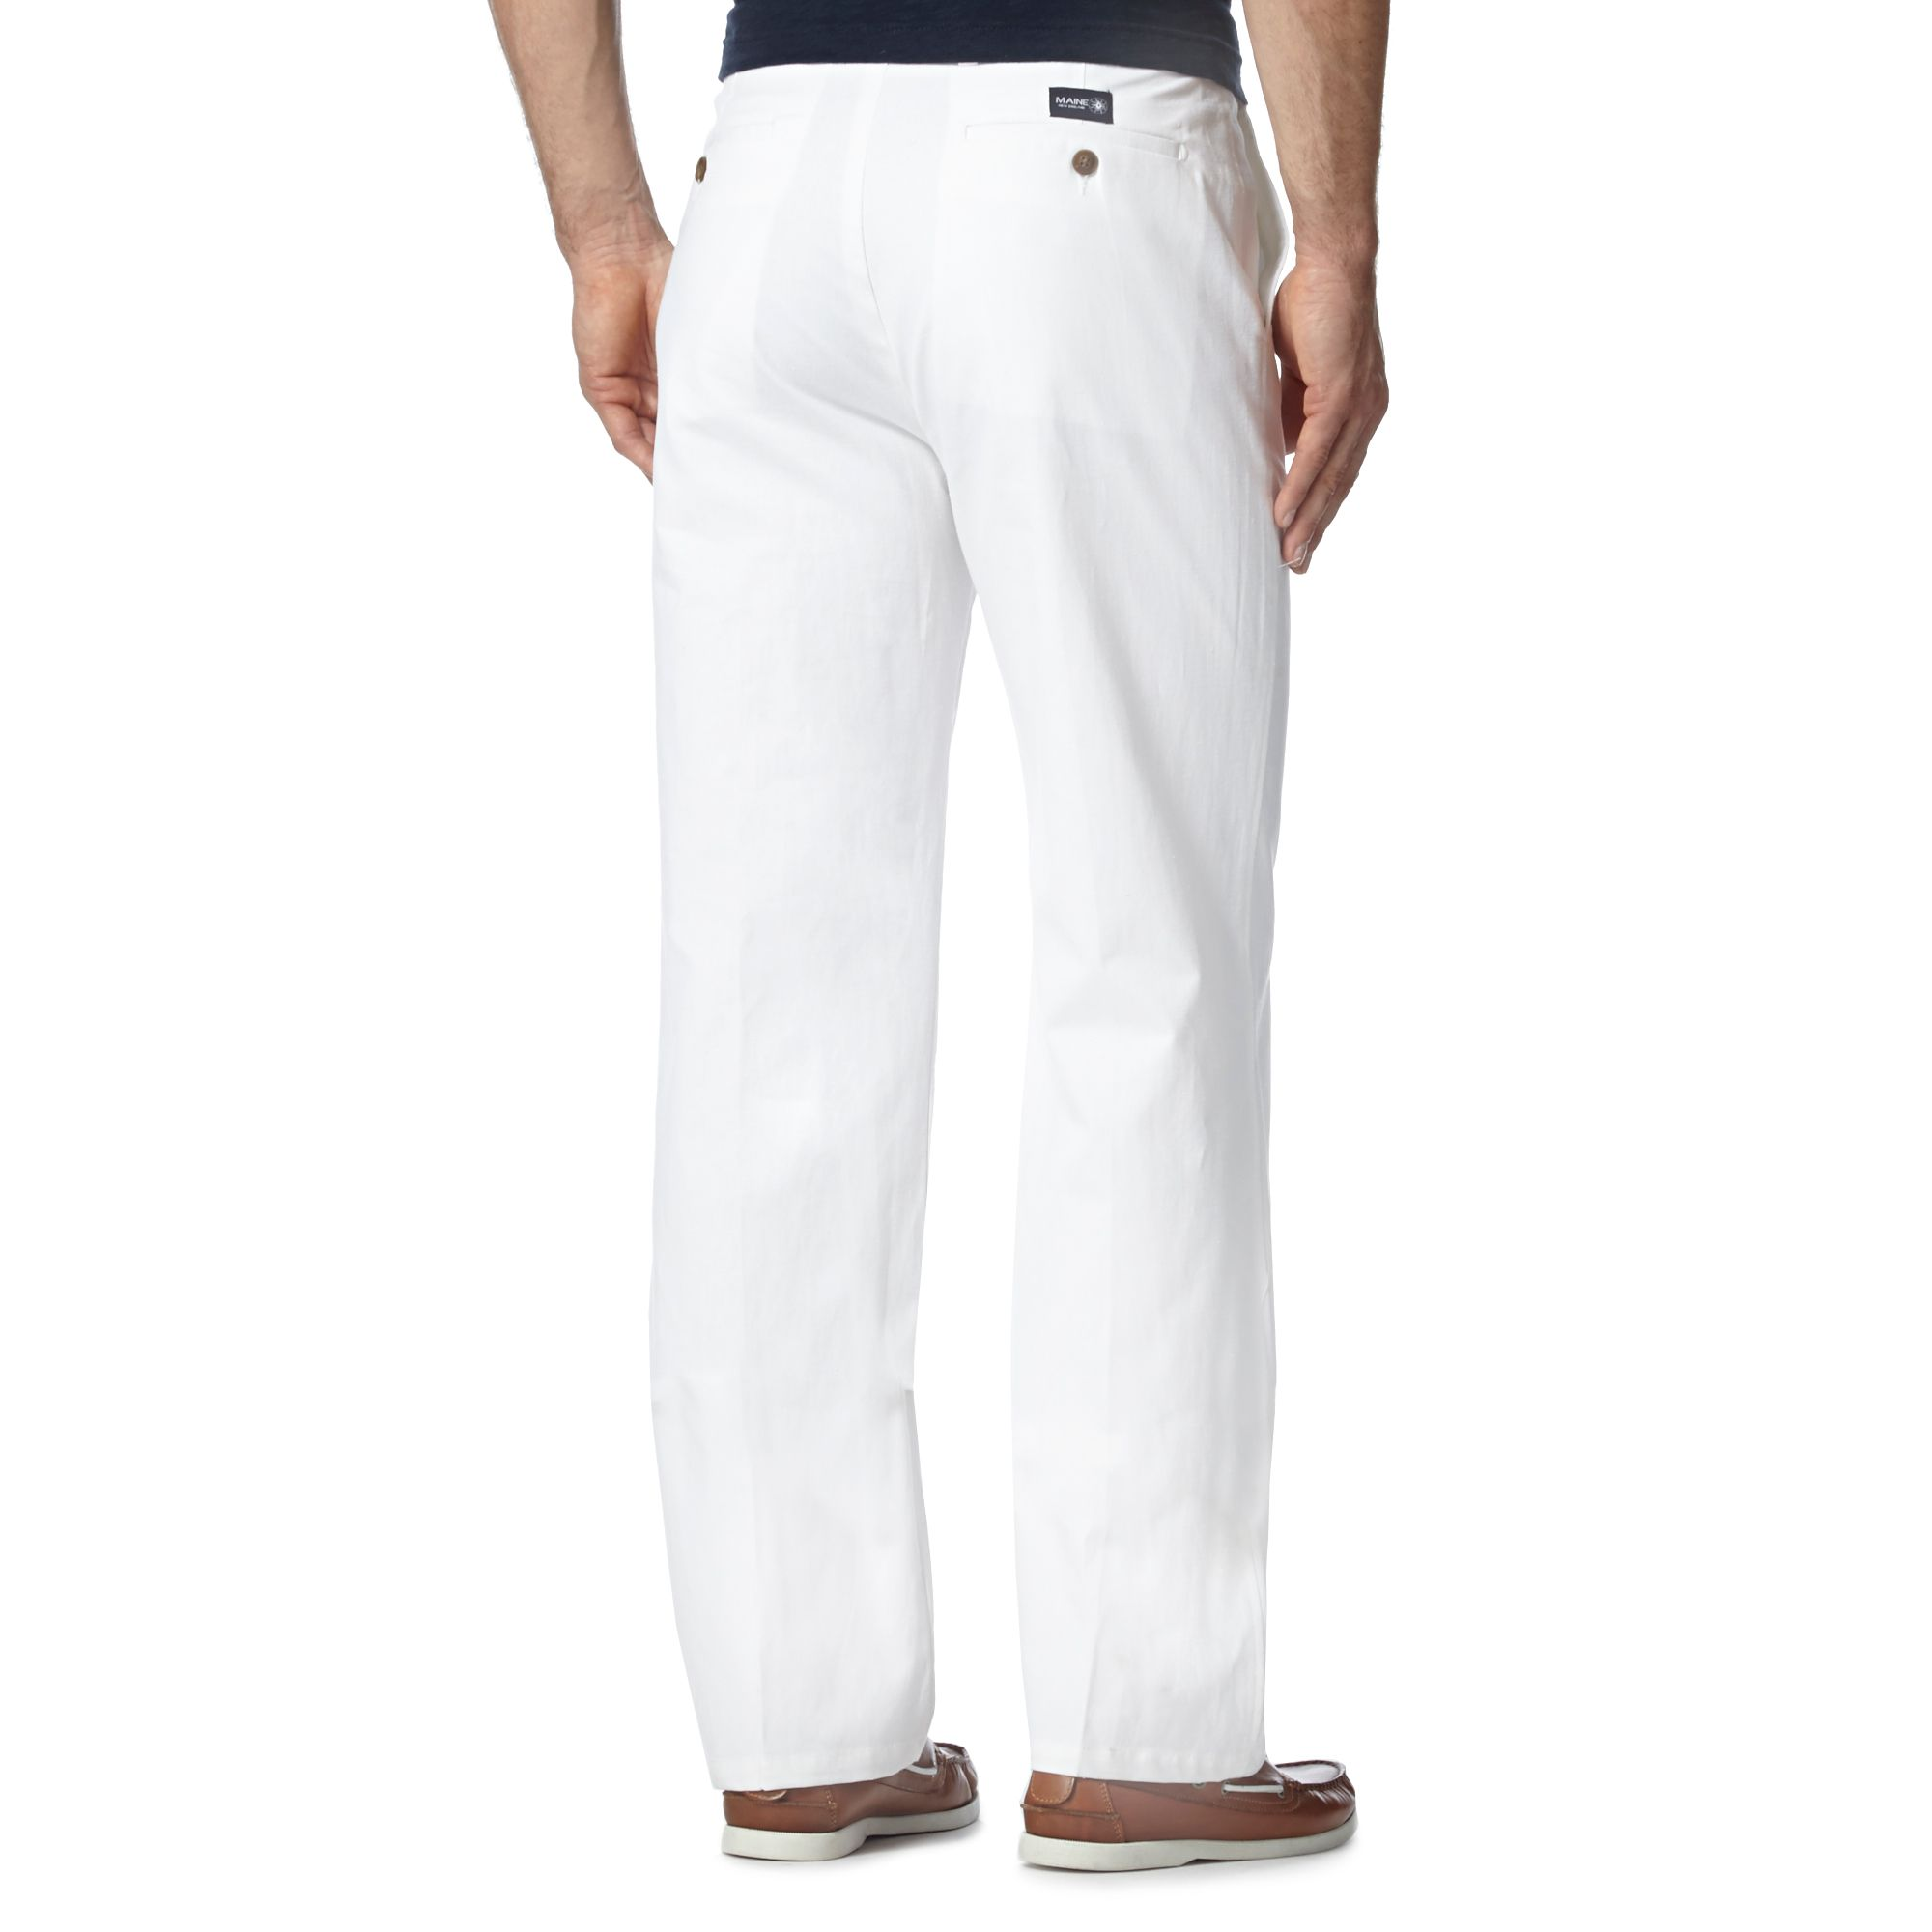 Free shipping and returns on Men's White Pants at sgmgqhay.gq